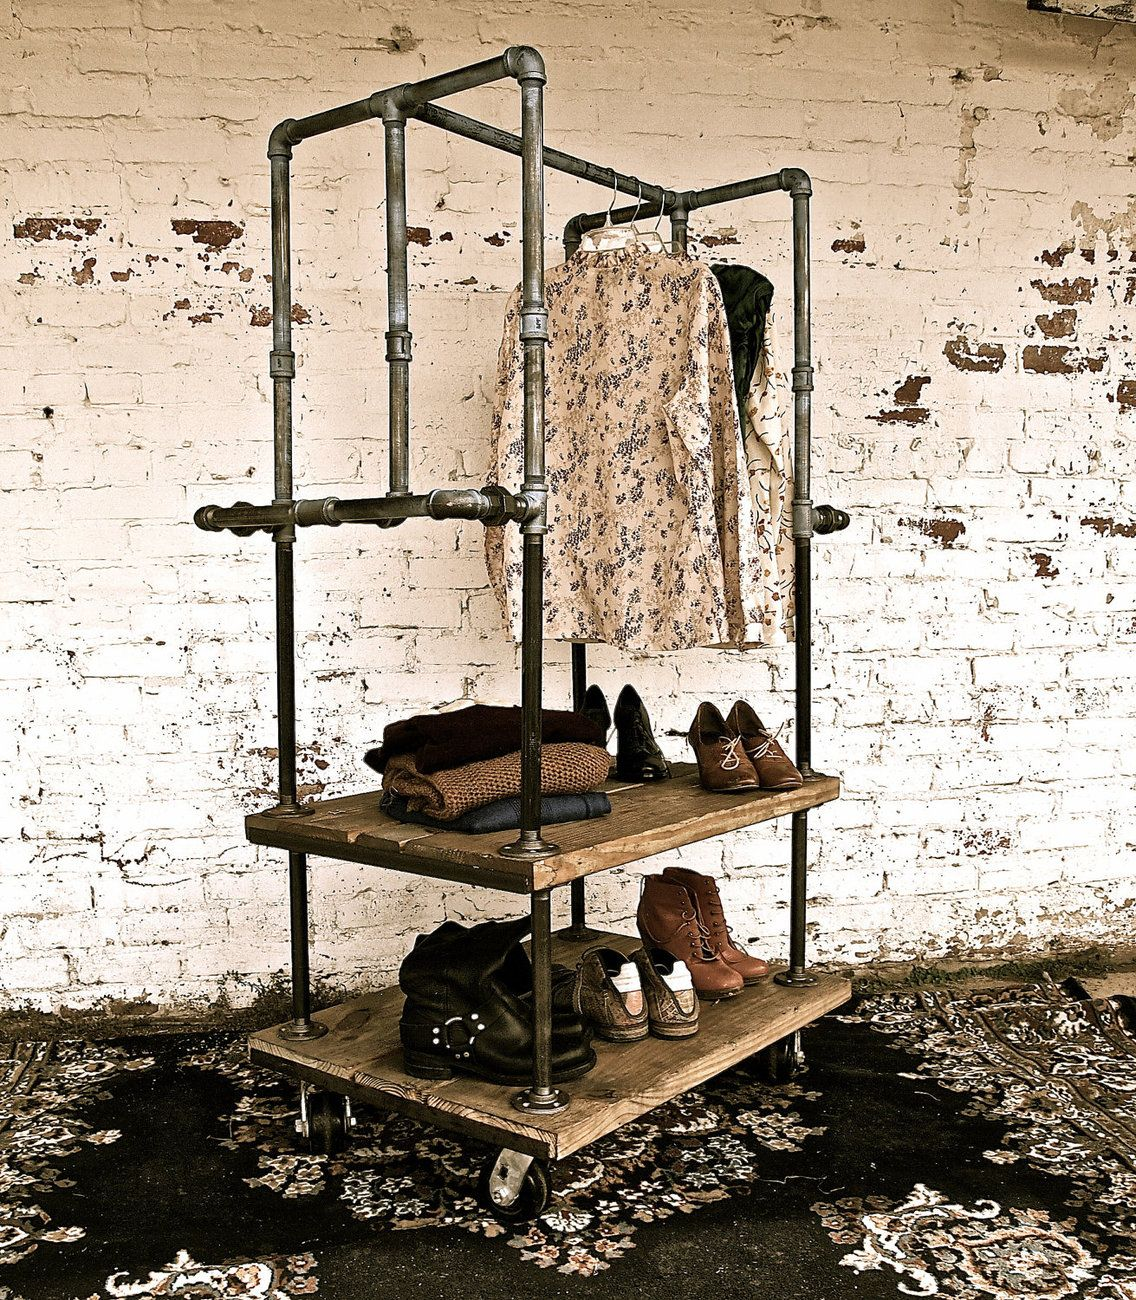 Mobile Clothing Rack | Madera | Pinterest | Perchero, Industrial y ...